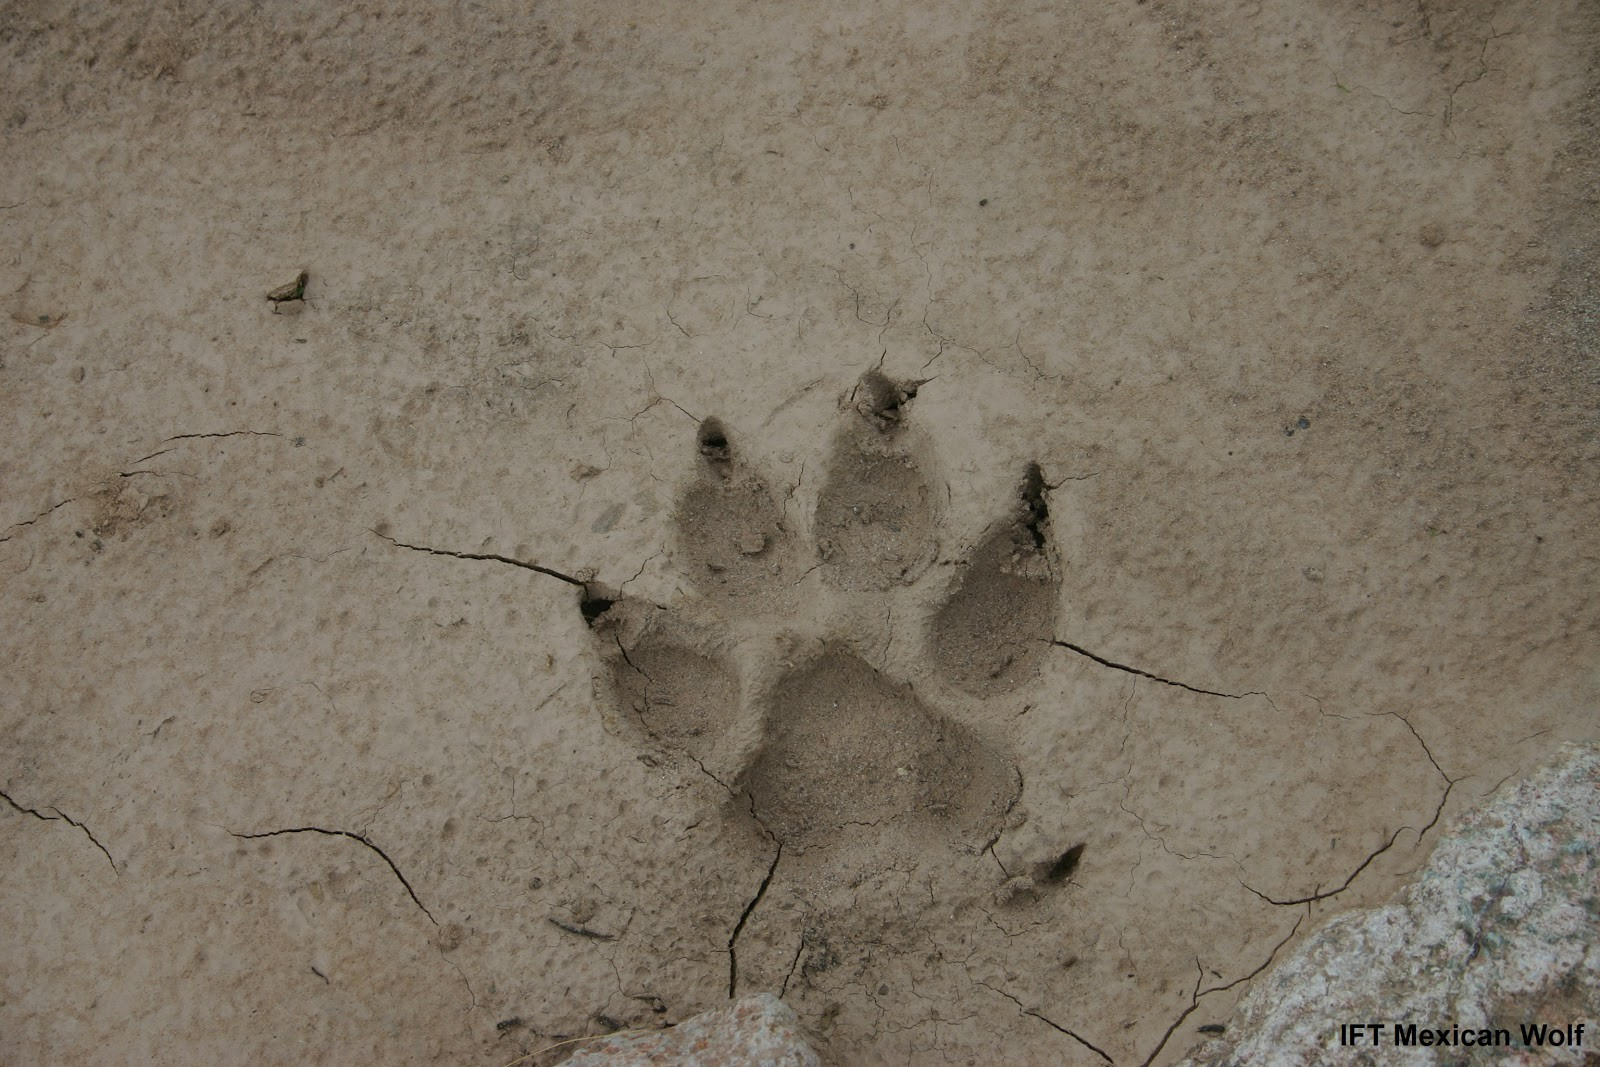 A wolf track in dried mud